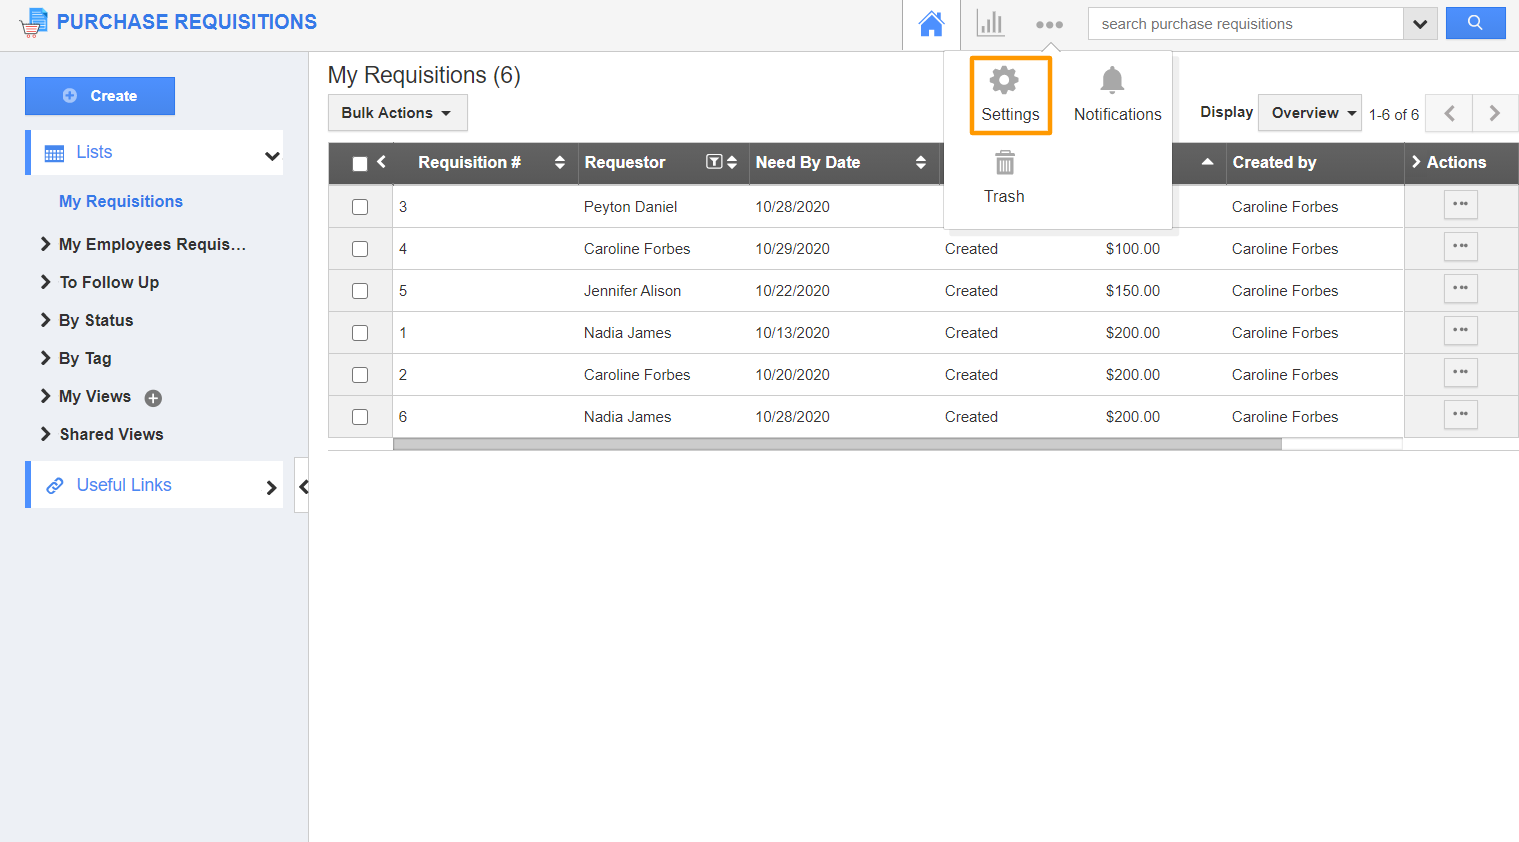 Purchase Requisitions App